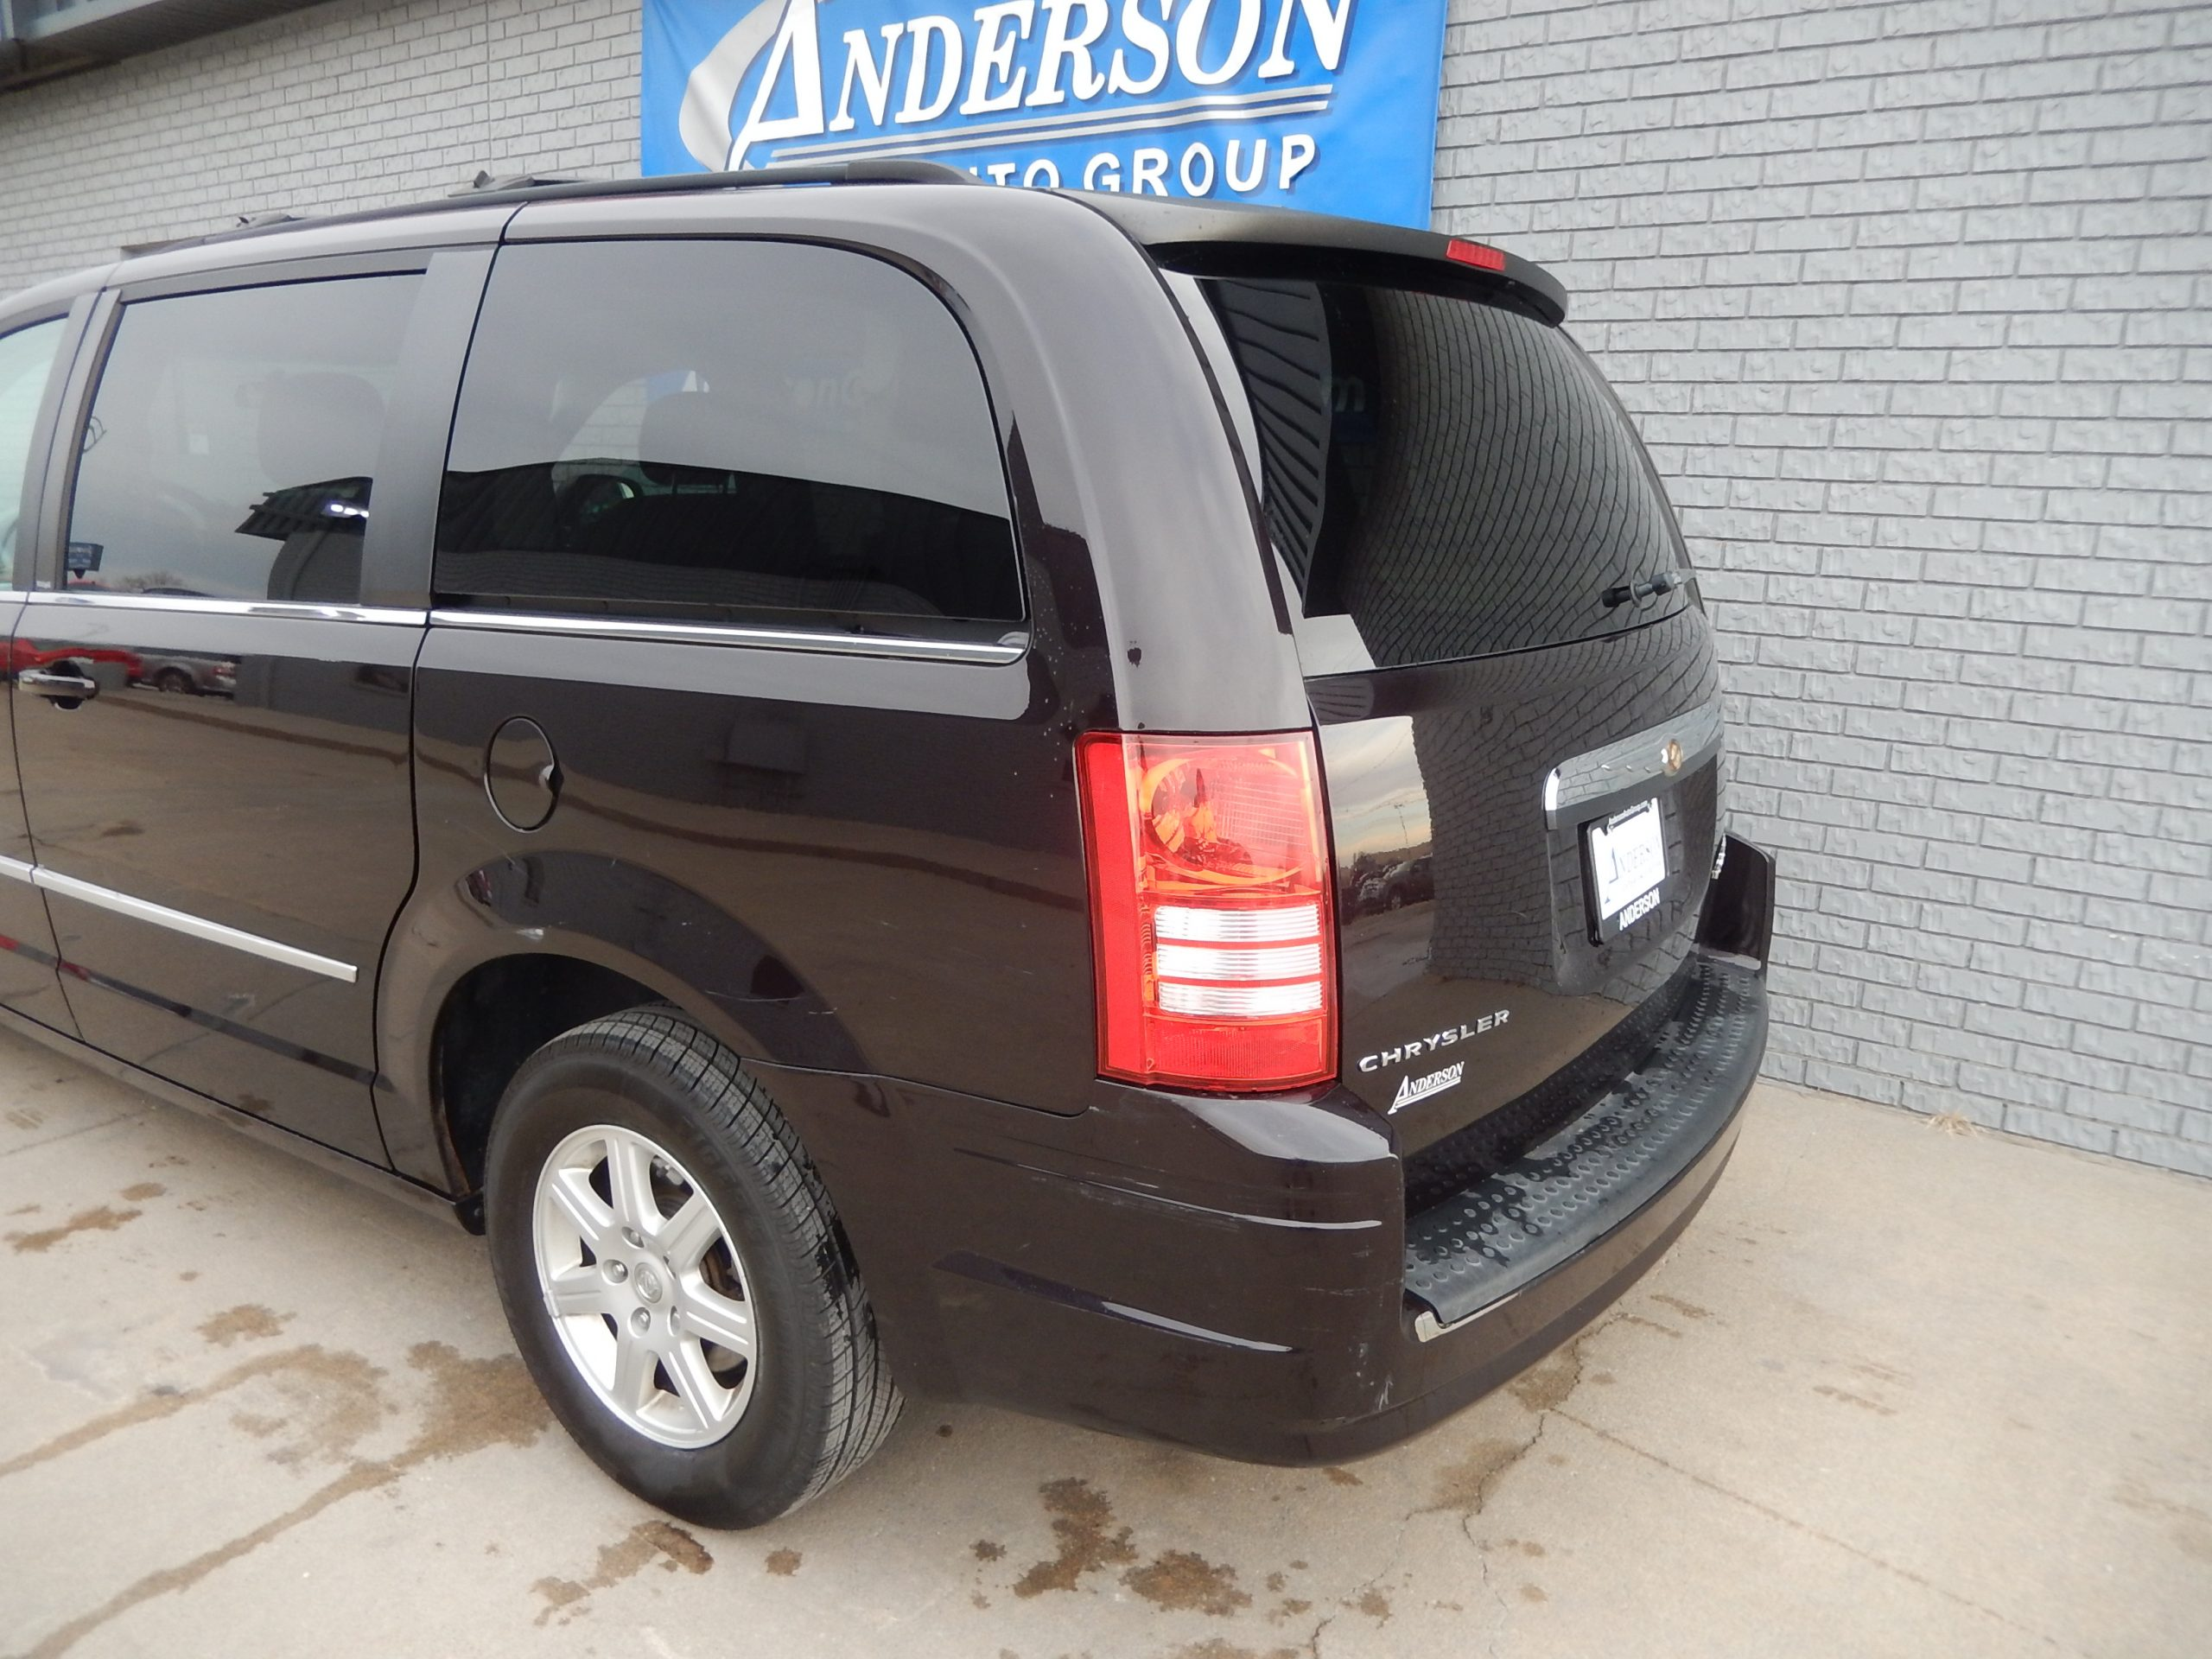 Used 2010 Chrysler Town & Country Touring Minivan for sale in